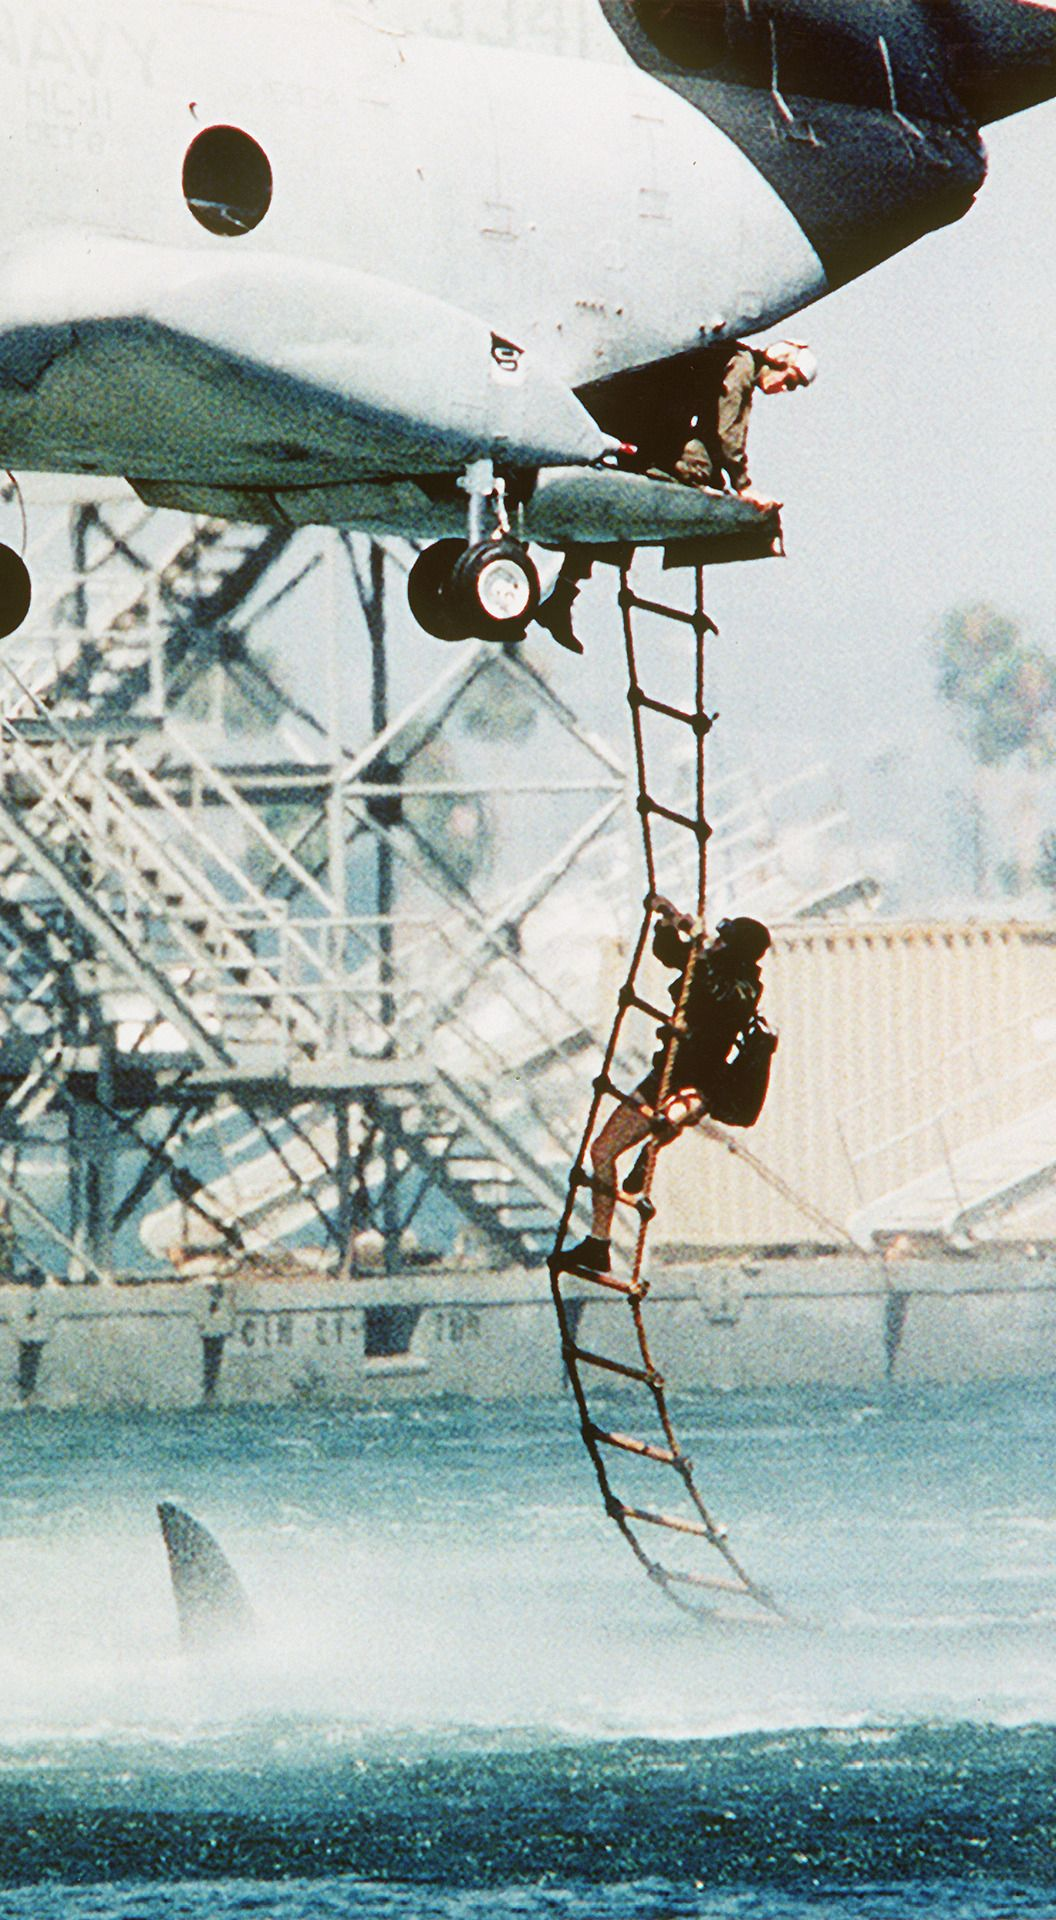 : A soldier grips the rope ladder extended from the rear of a helicopter as a shark fin passes in the water close below.